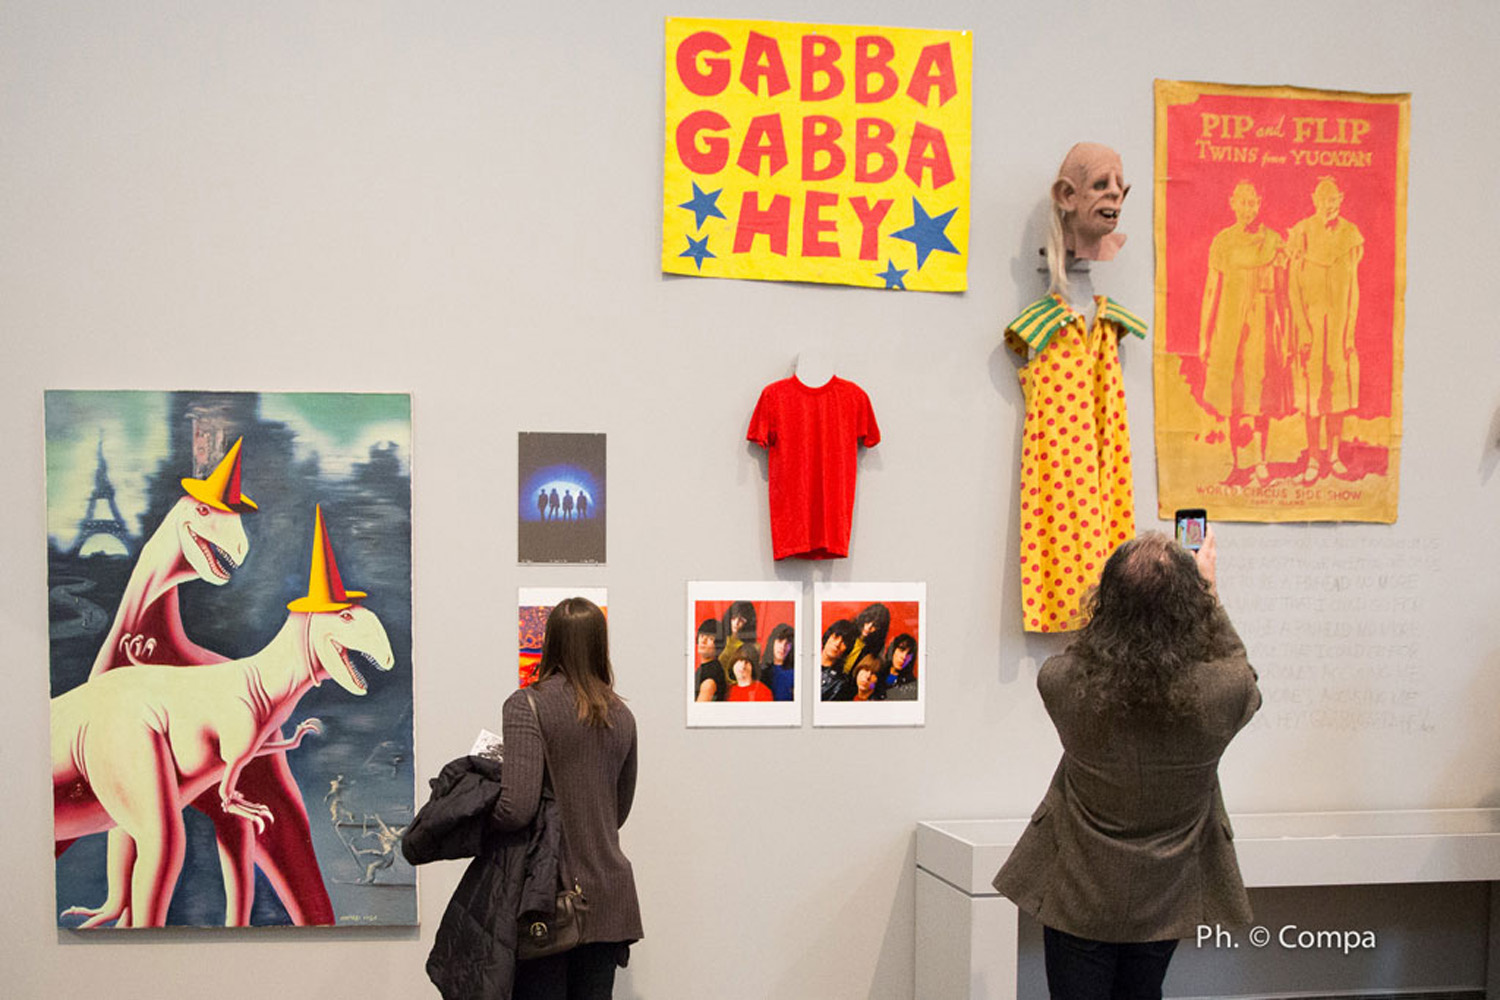 "Left to right: Mark Kostabi's painting ""Enasaurs"" (used as the cover for the Ramones' album ¡Adios Amigos!); George DuBose's photographs of the Ramones; End of the Century album cover and outtake by Mick Rock; t-shirt worn by Johnny Ramone on the cover for the album End of the Century; ""Gabba Gabba Hey"" sign and ""Pinhead"" mask and dress used onstage by the Ramones; Bobby Belfiore's painting ""Pip and Flip"" (from the nightclub Coney Island High). Photo by Andrea Compa."